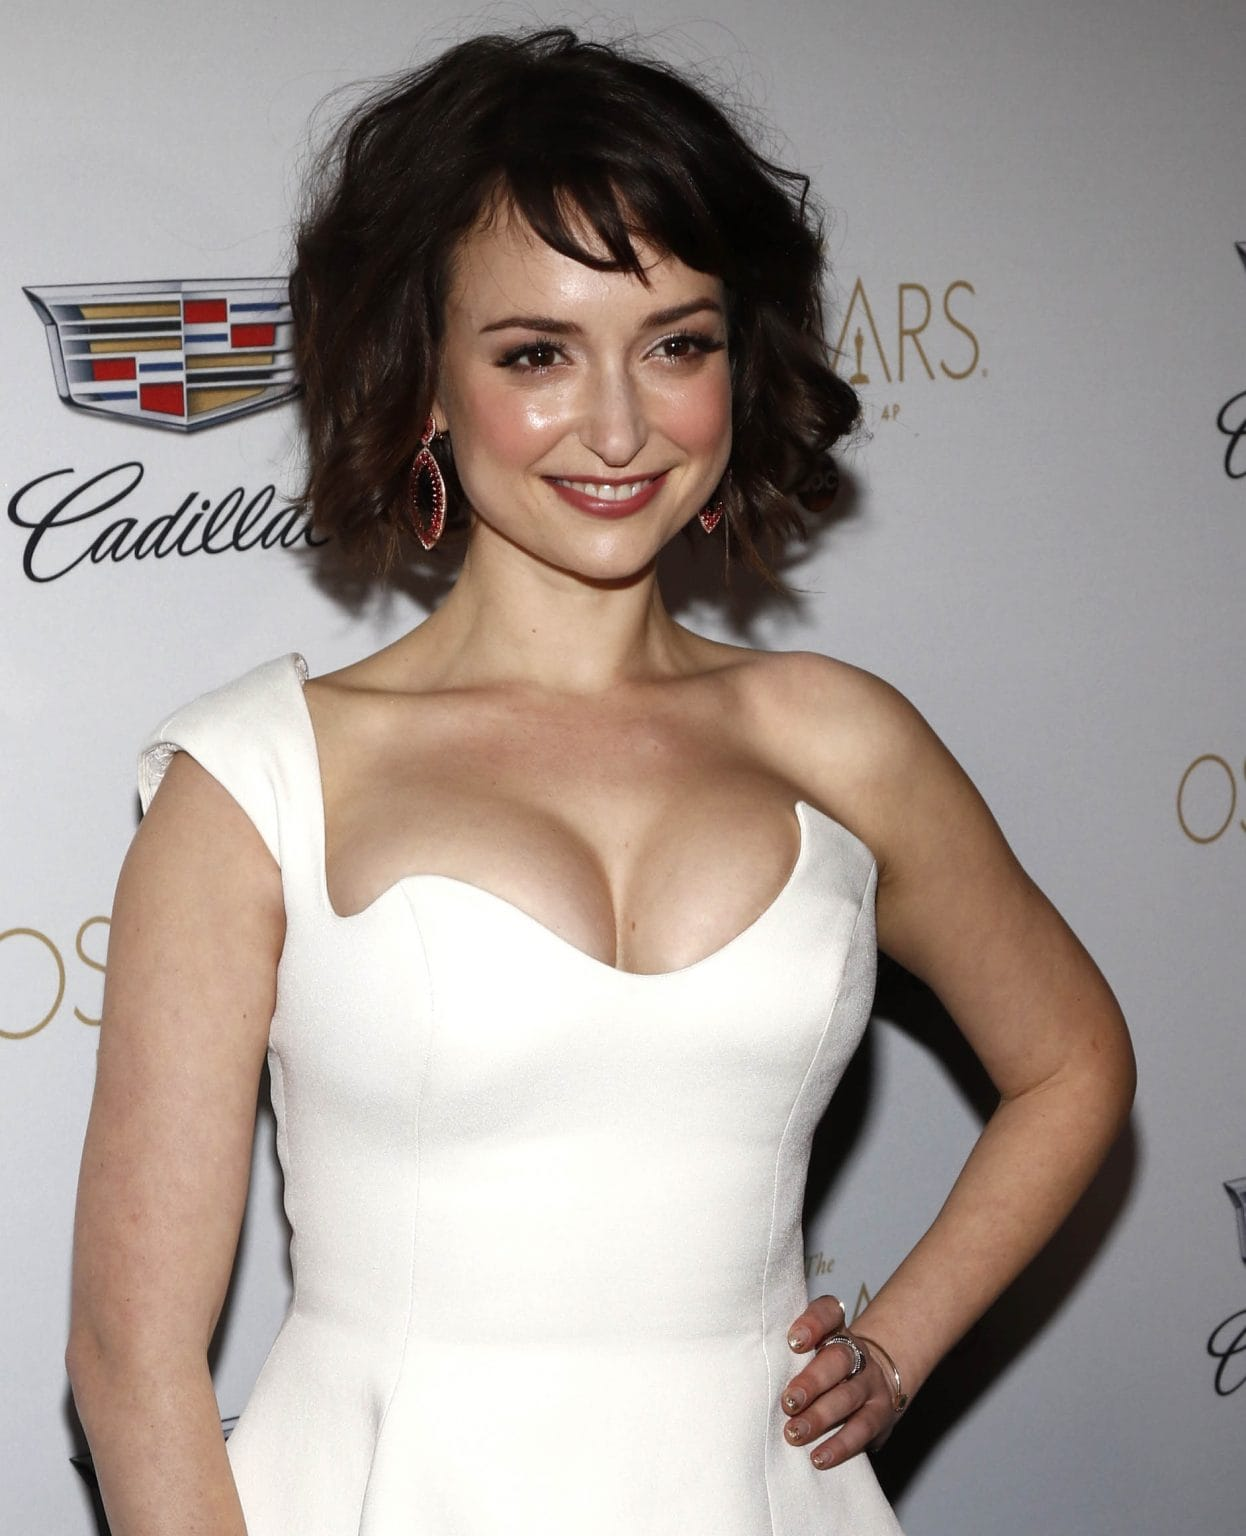 How Milana Vayntrub's Boobs and AT&T Commercials Impacted Career